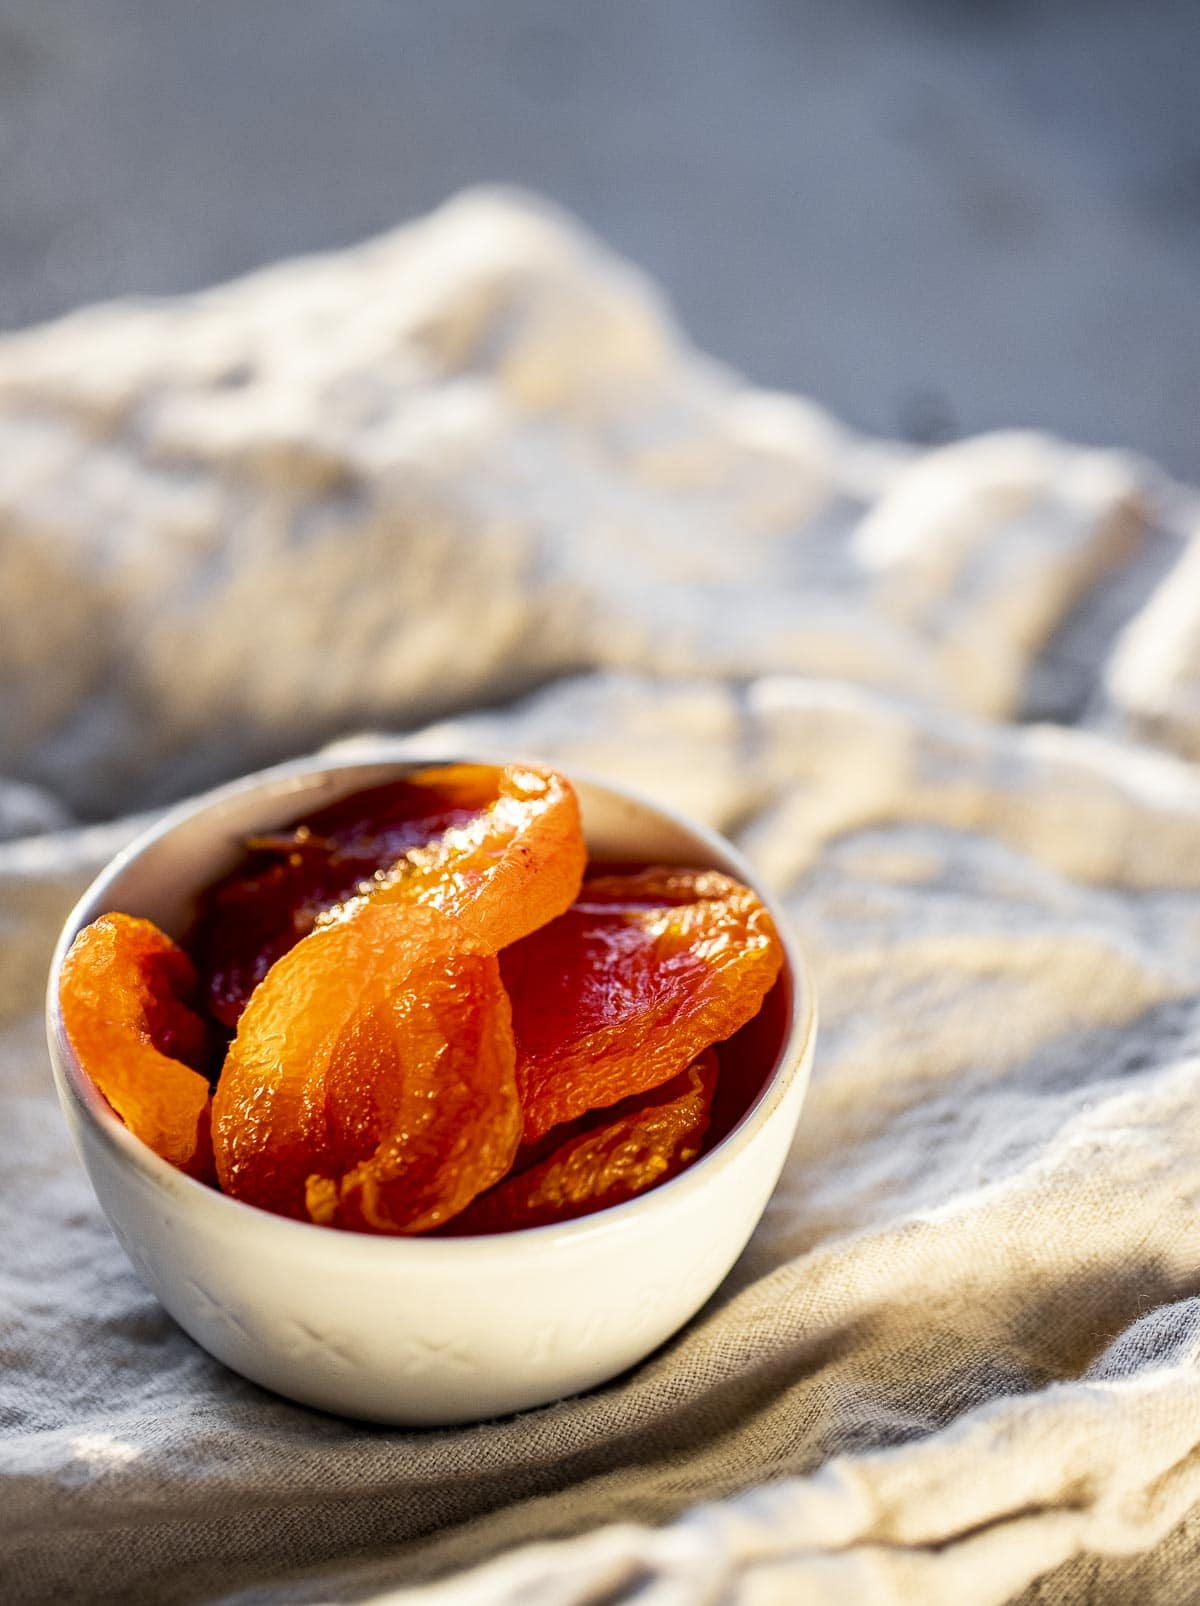 Dried apricots in a white dish on a white cloth.